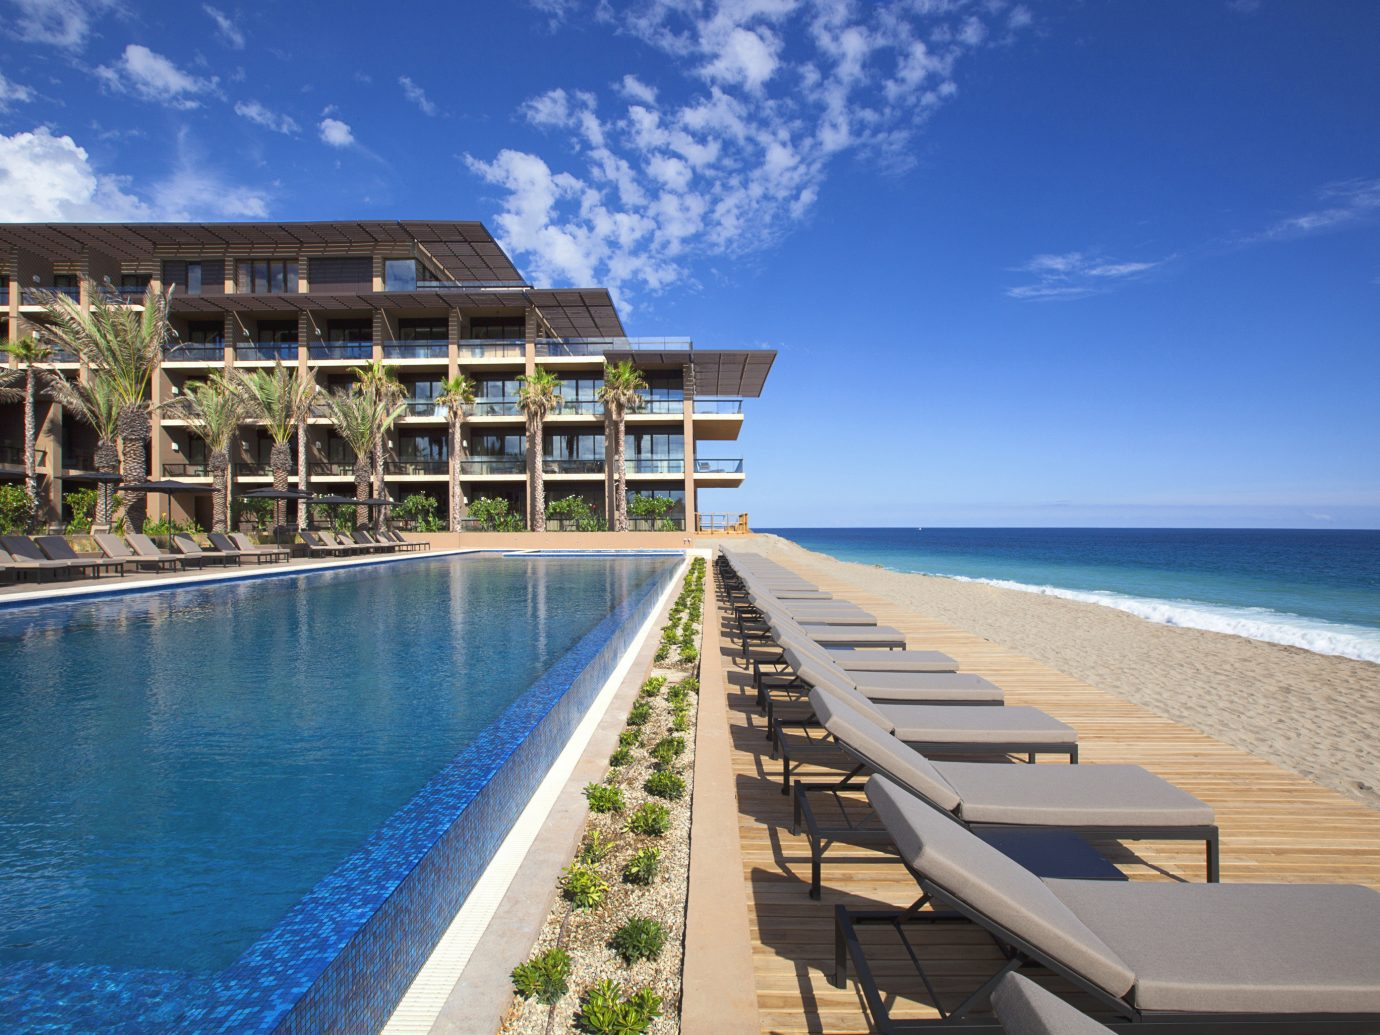 Pool and ocean view at JW Marriott Los Cabos